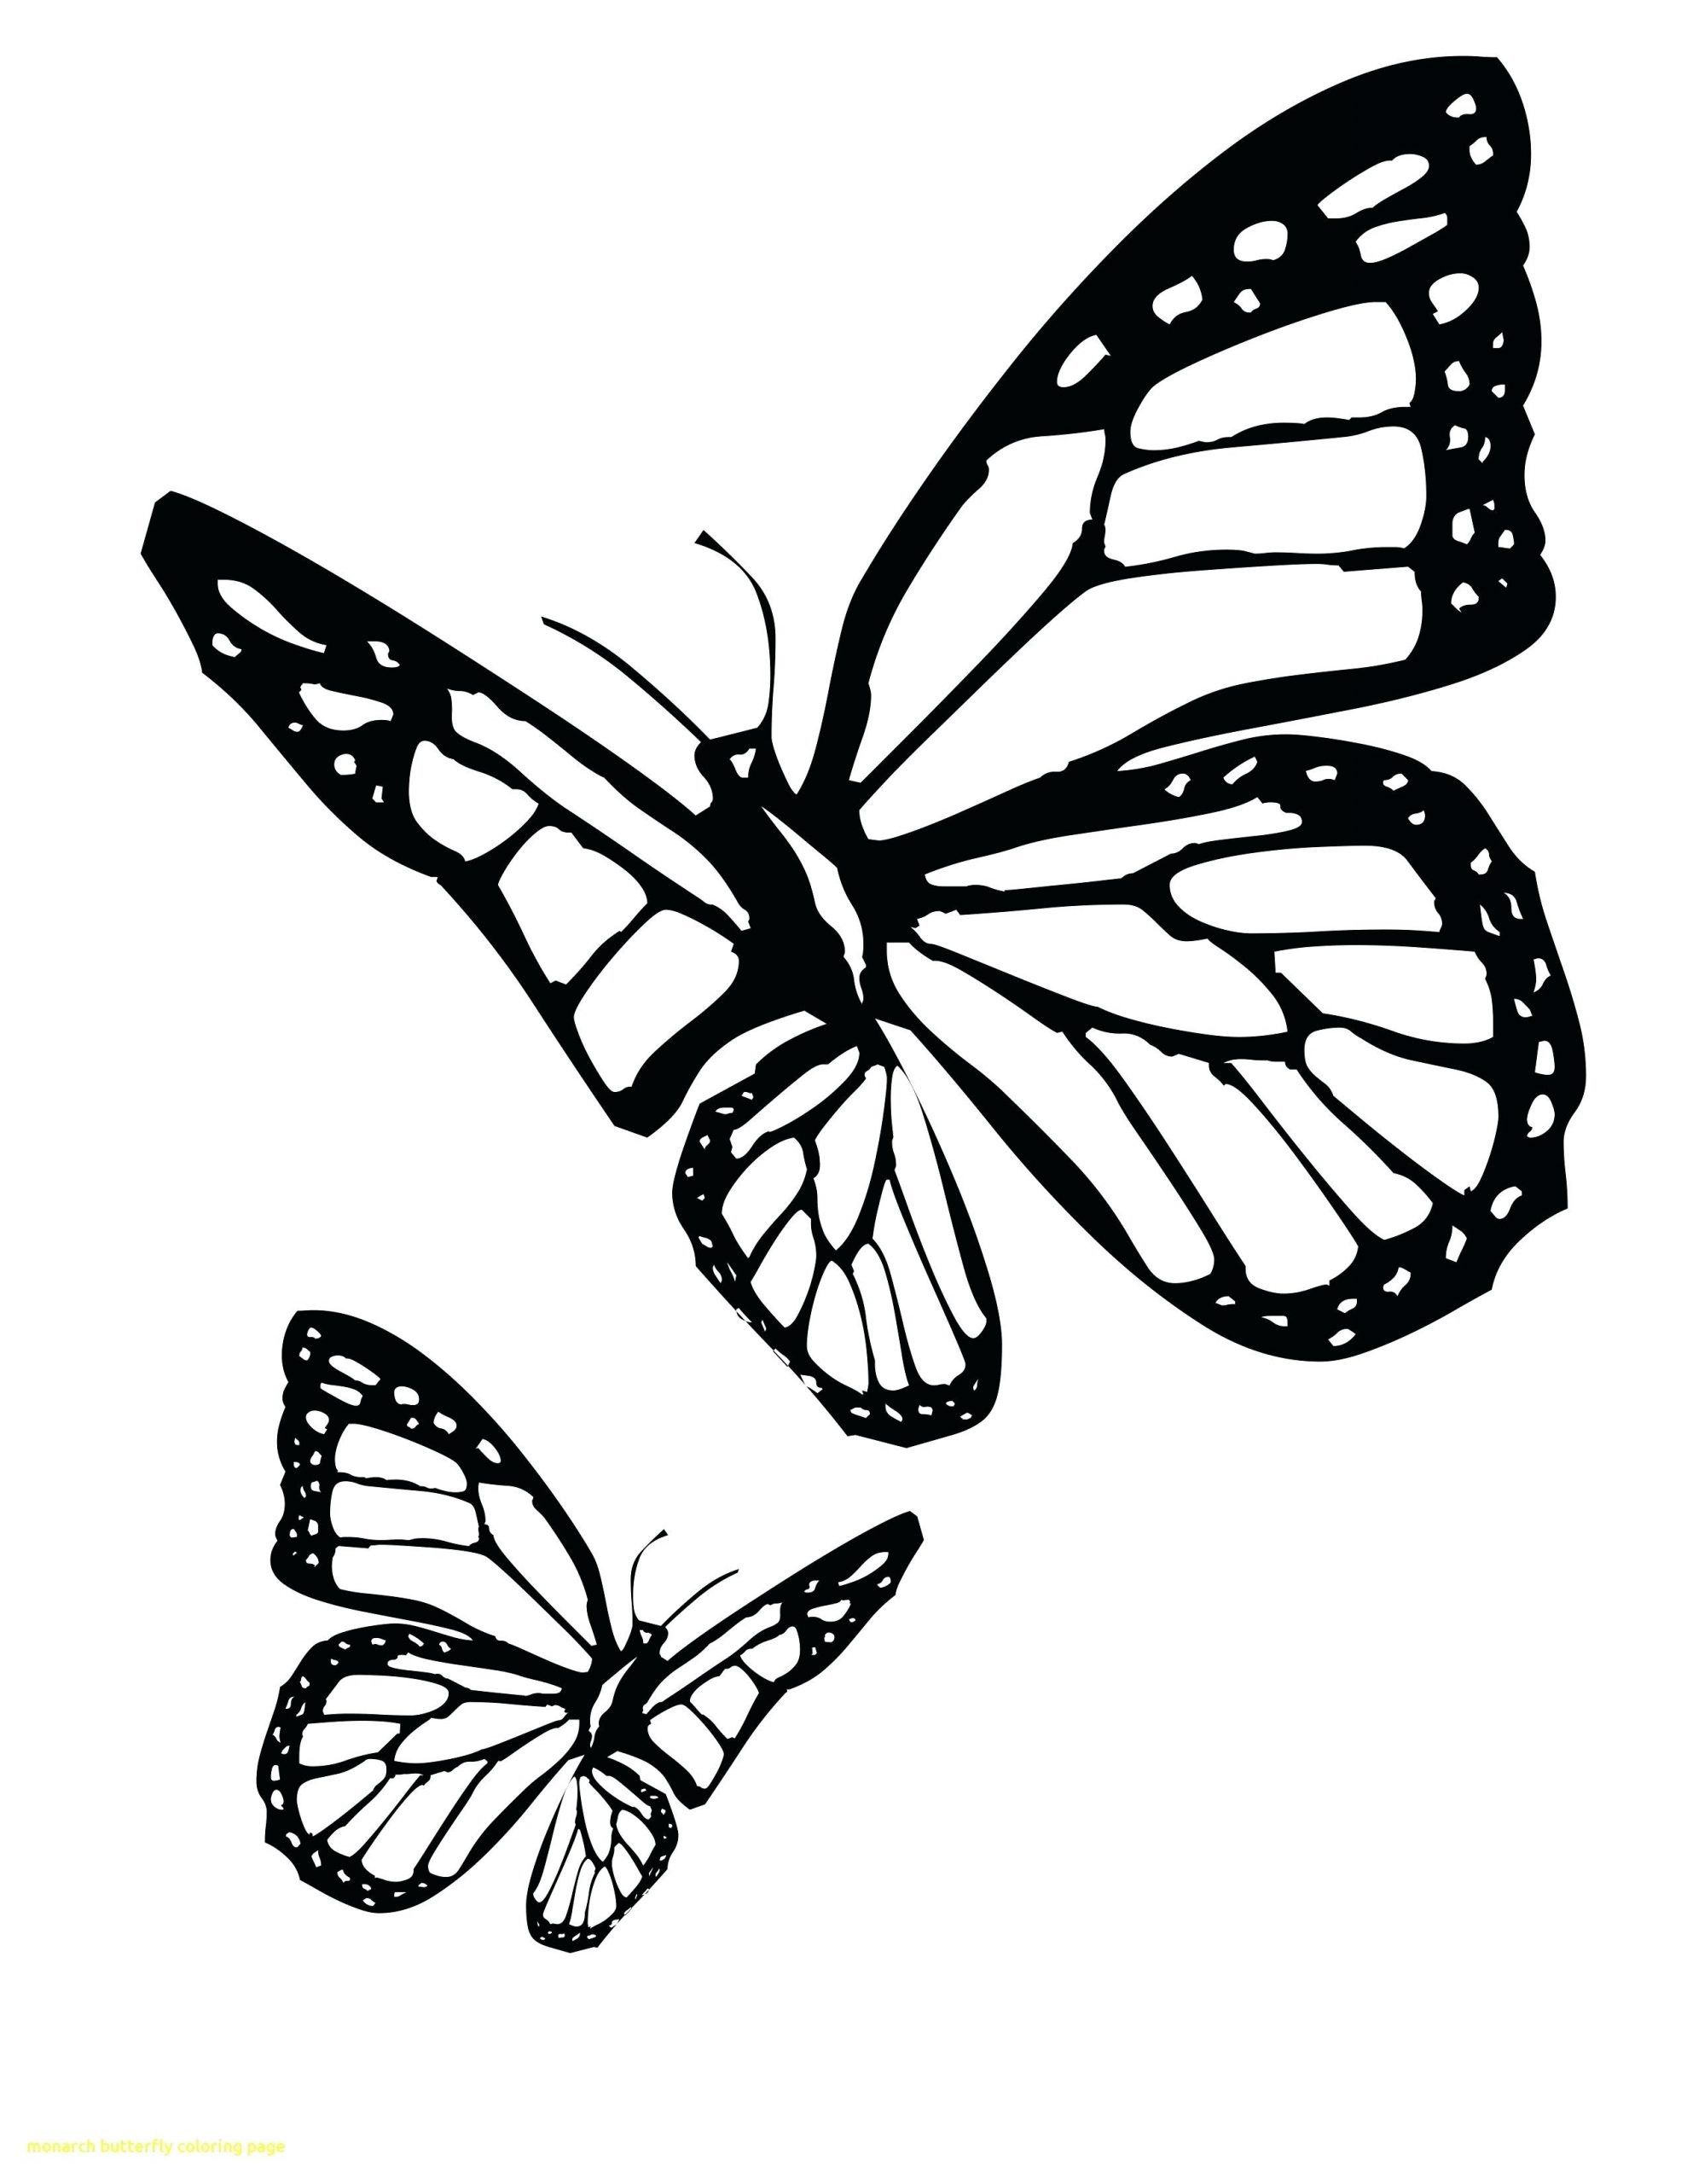 Printable Butterfly Coloring Page Youngandtae Com Butterfly Coloring Page Butterfly Drawing Outline Butterfly Tattoo Stencil [ 2560 x 1978 Pixel ]